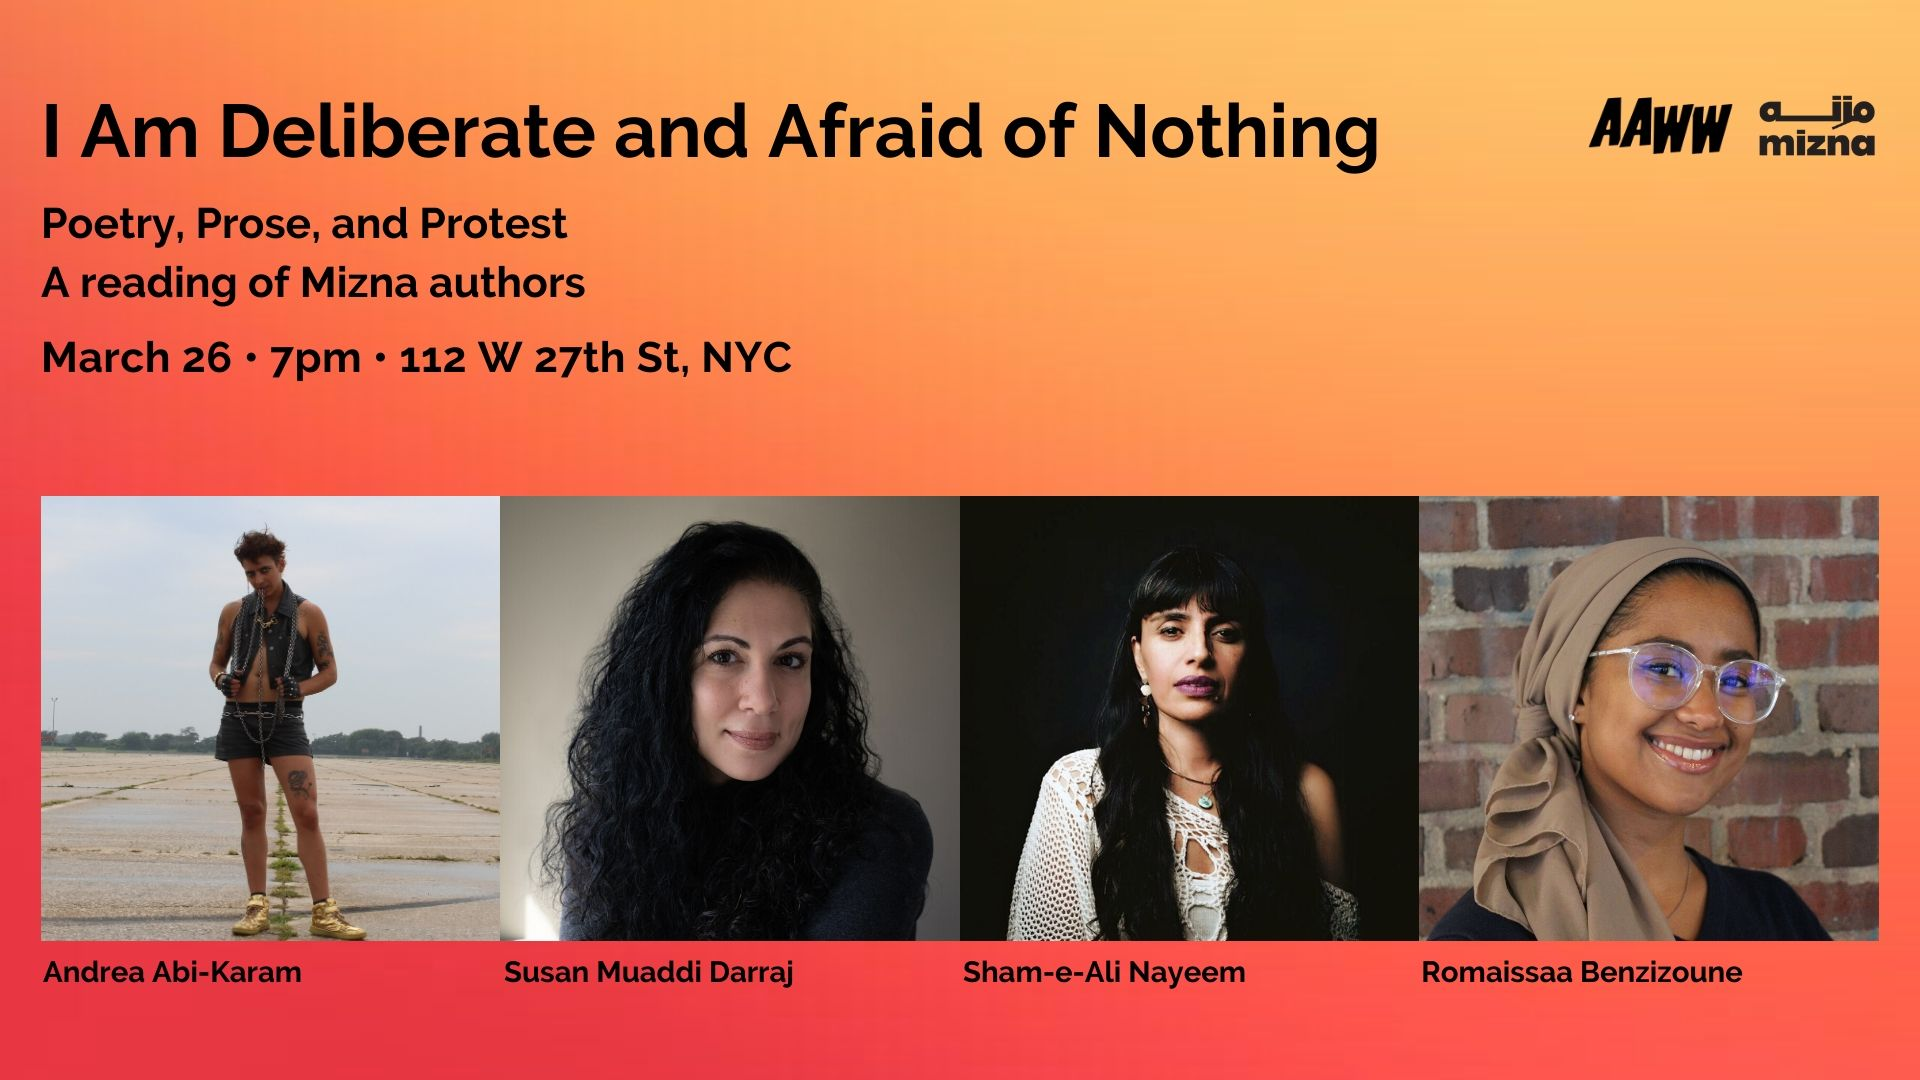 I Am Deliberate and Afraid of Nothing: Poetry, Prose, and Protest